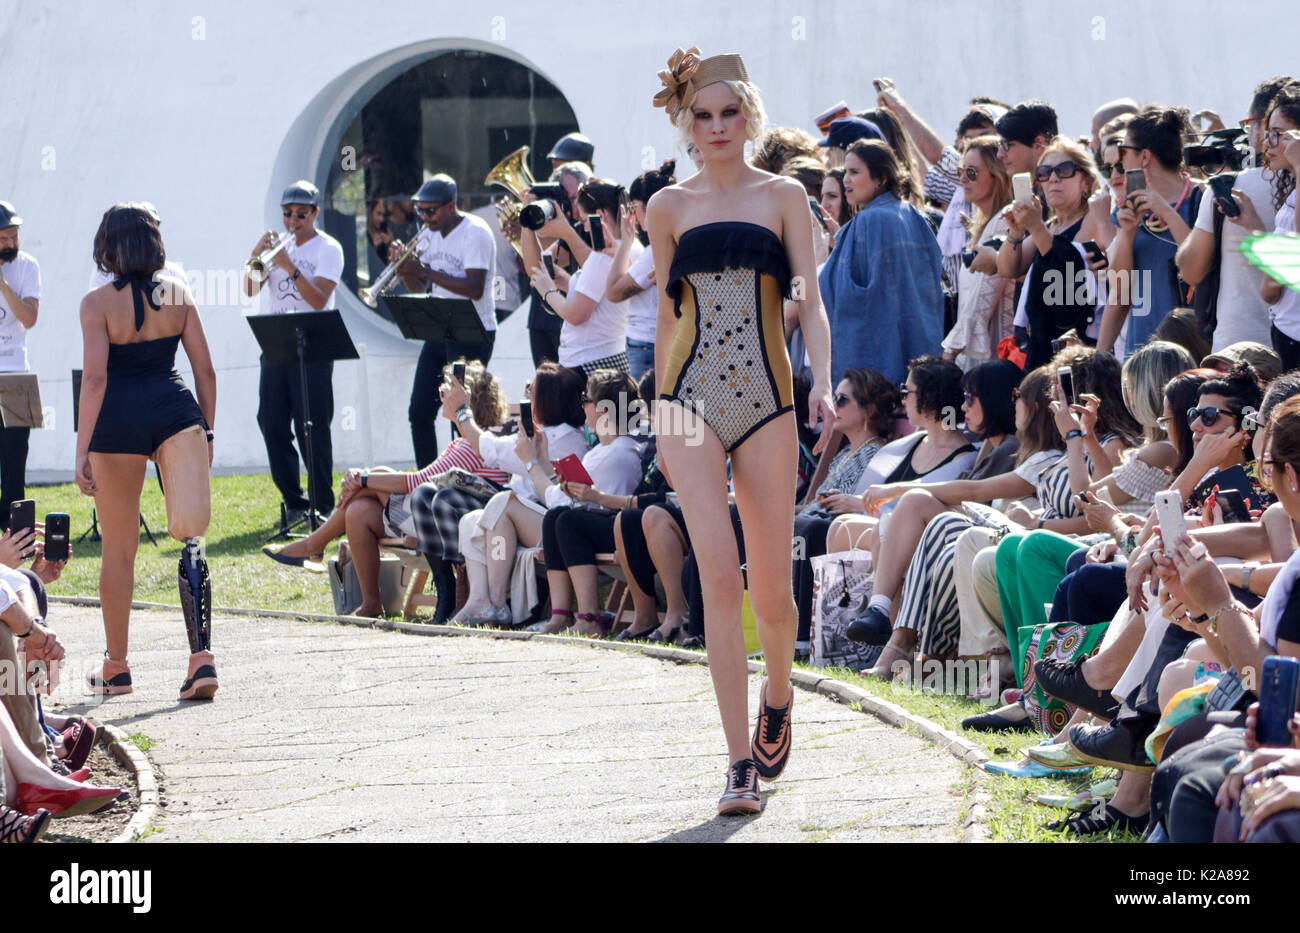 SAO PAULO, BRAZIL – AUGUST 30: A model walks at Ronaldo Fraga runway at SPFW N44 Winter 2018 on August 30, 2017 in Sao Paulo, Brazil. (Foto: Fabricio Bomjardim/Brazil Photo Press/Getty Images) Credit: Brazil Photo Press/Alamy Live News - Stock Image